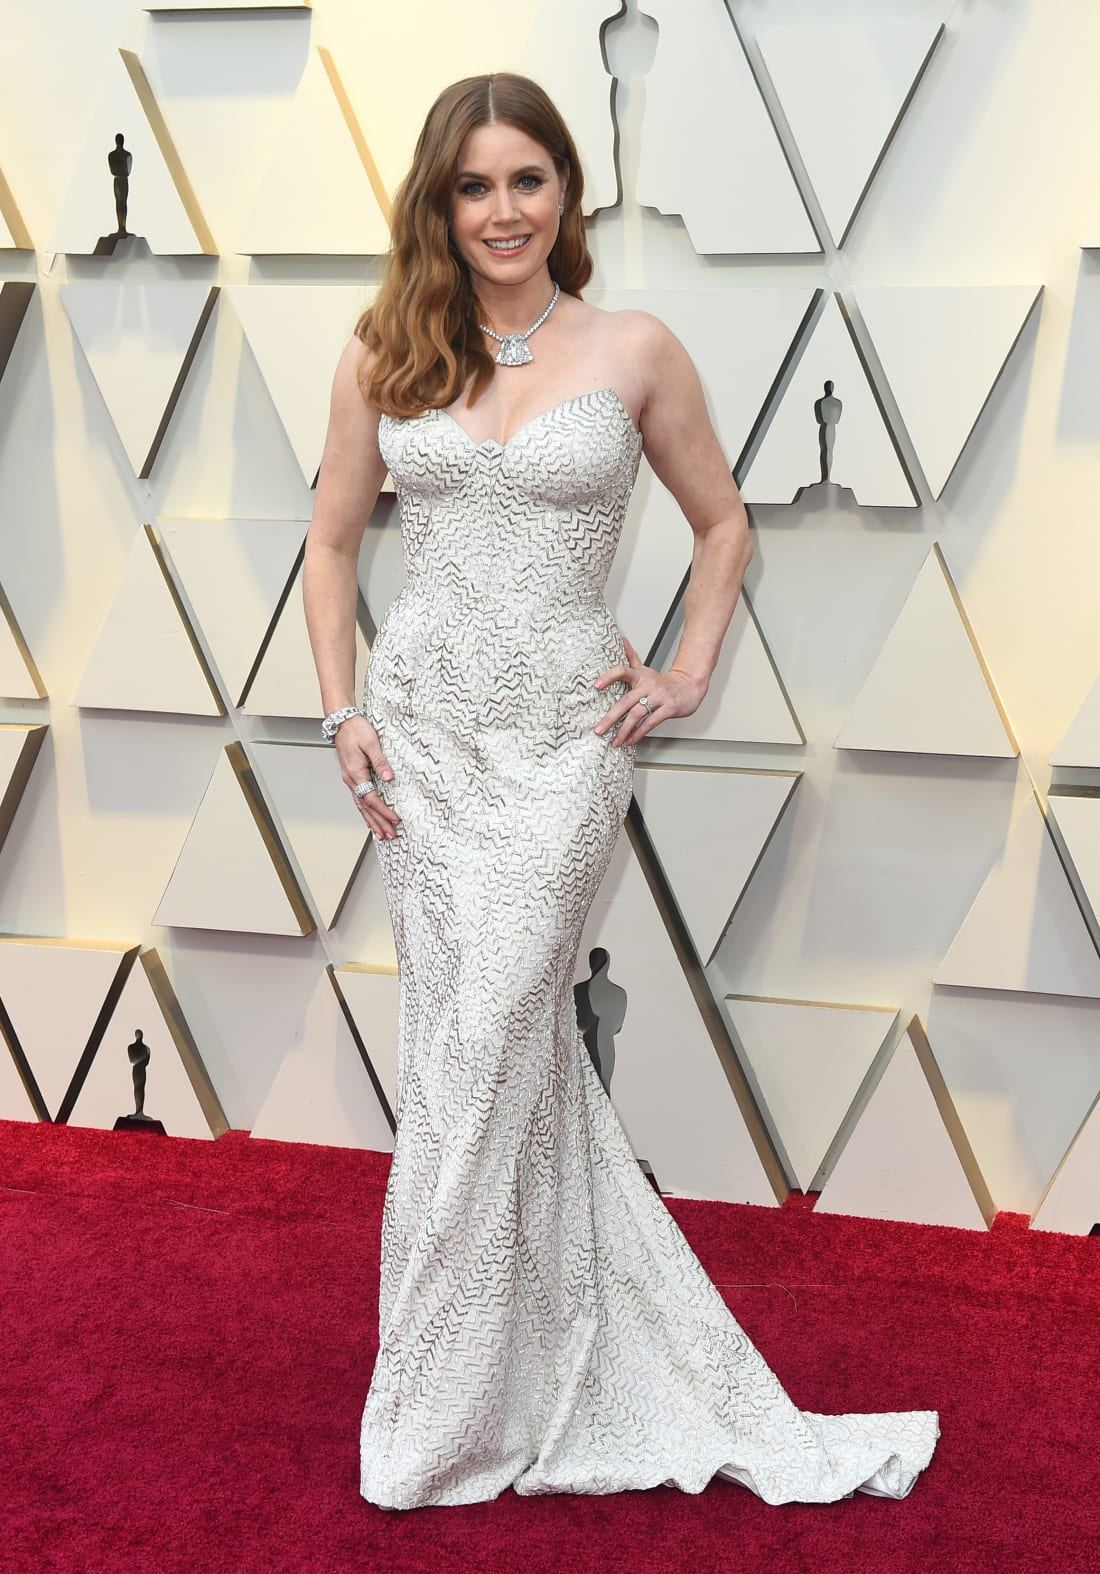 jinza-bridal-oscar-2019-amy-adams.jpg